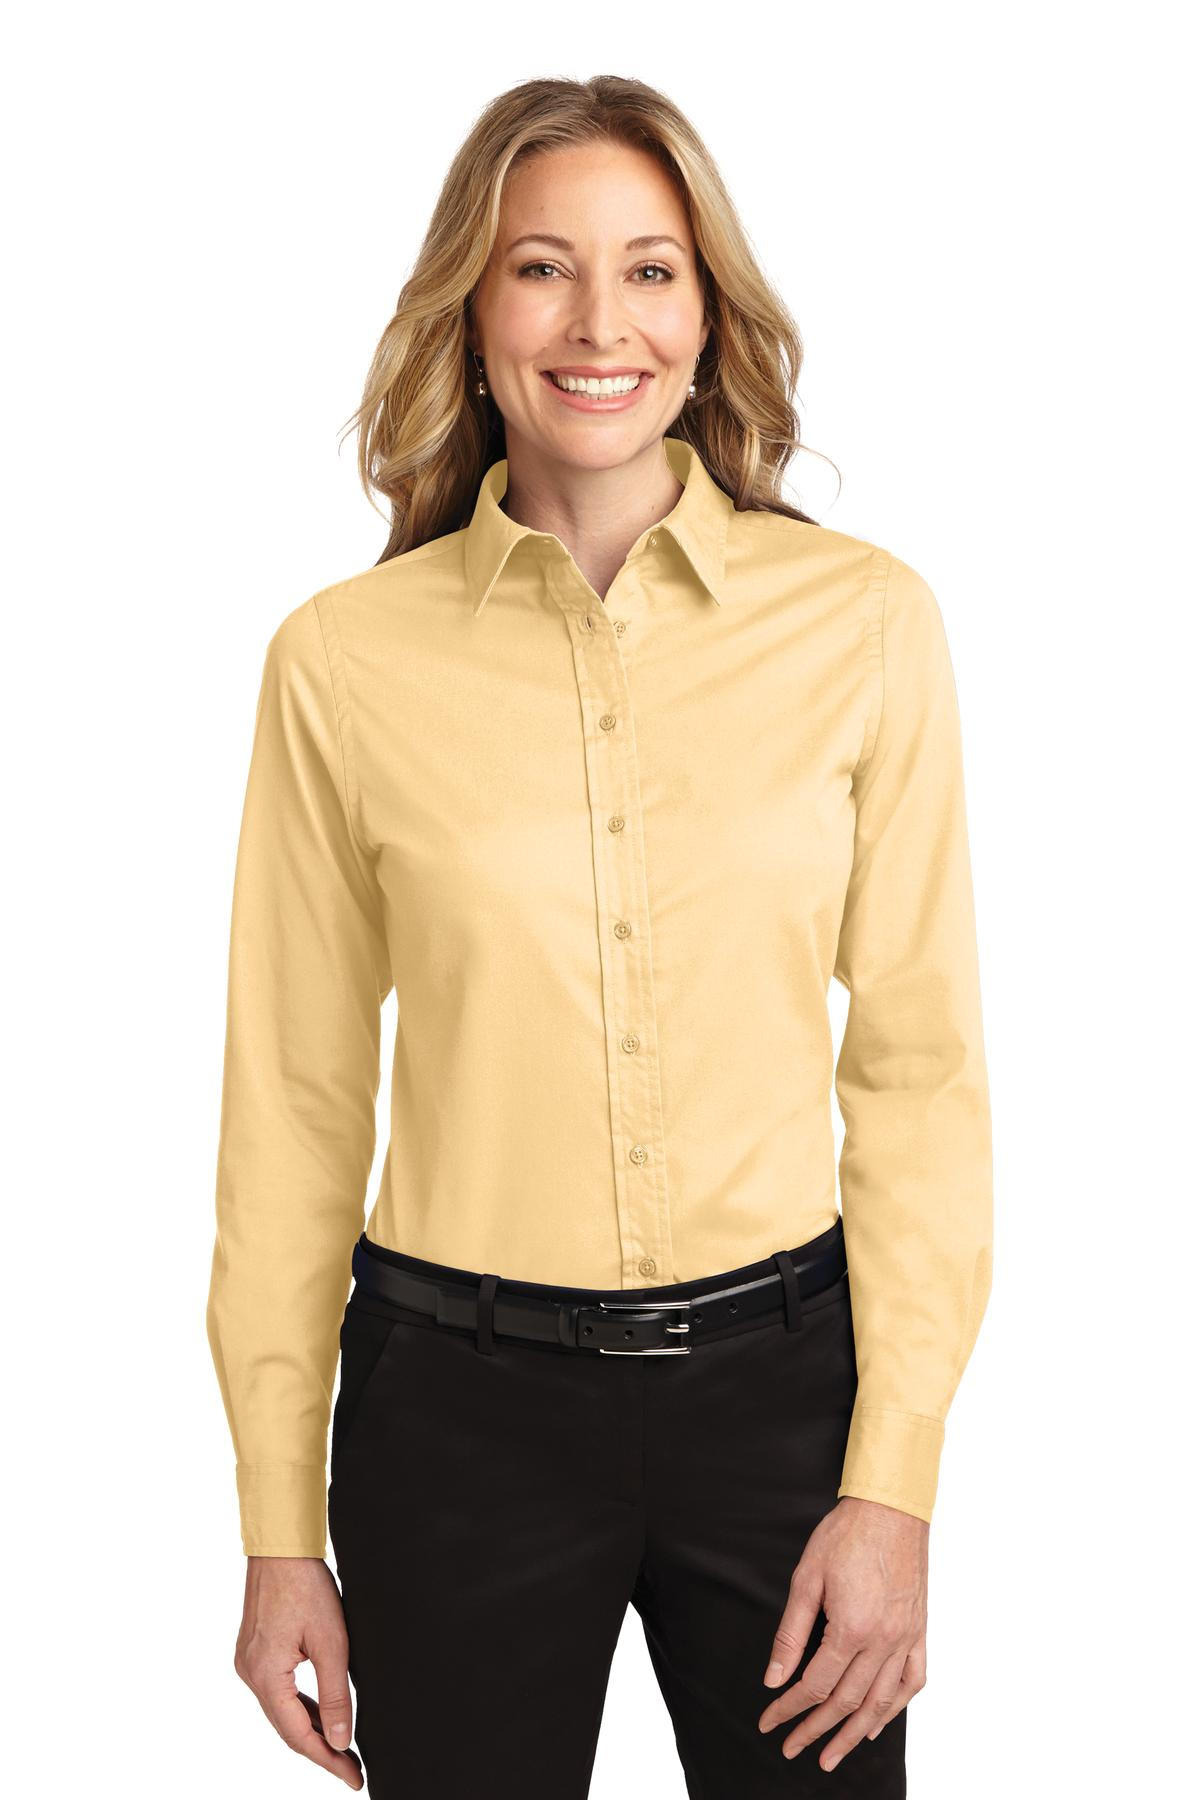 Port Authority ®  Ladies Long Sleeve Easy Care Shirt.  L608 - Yellow